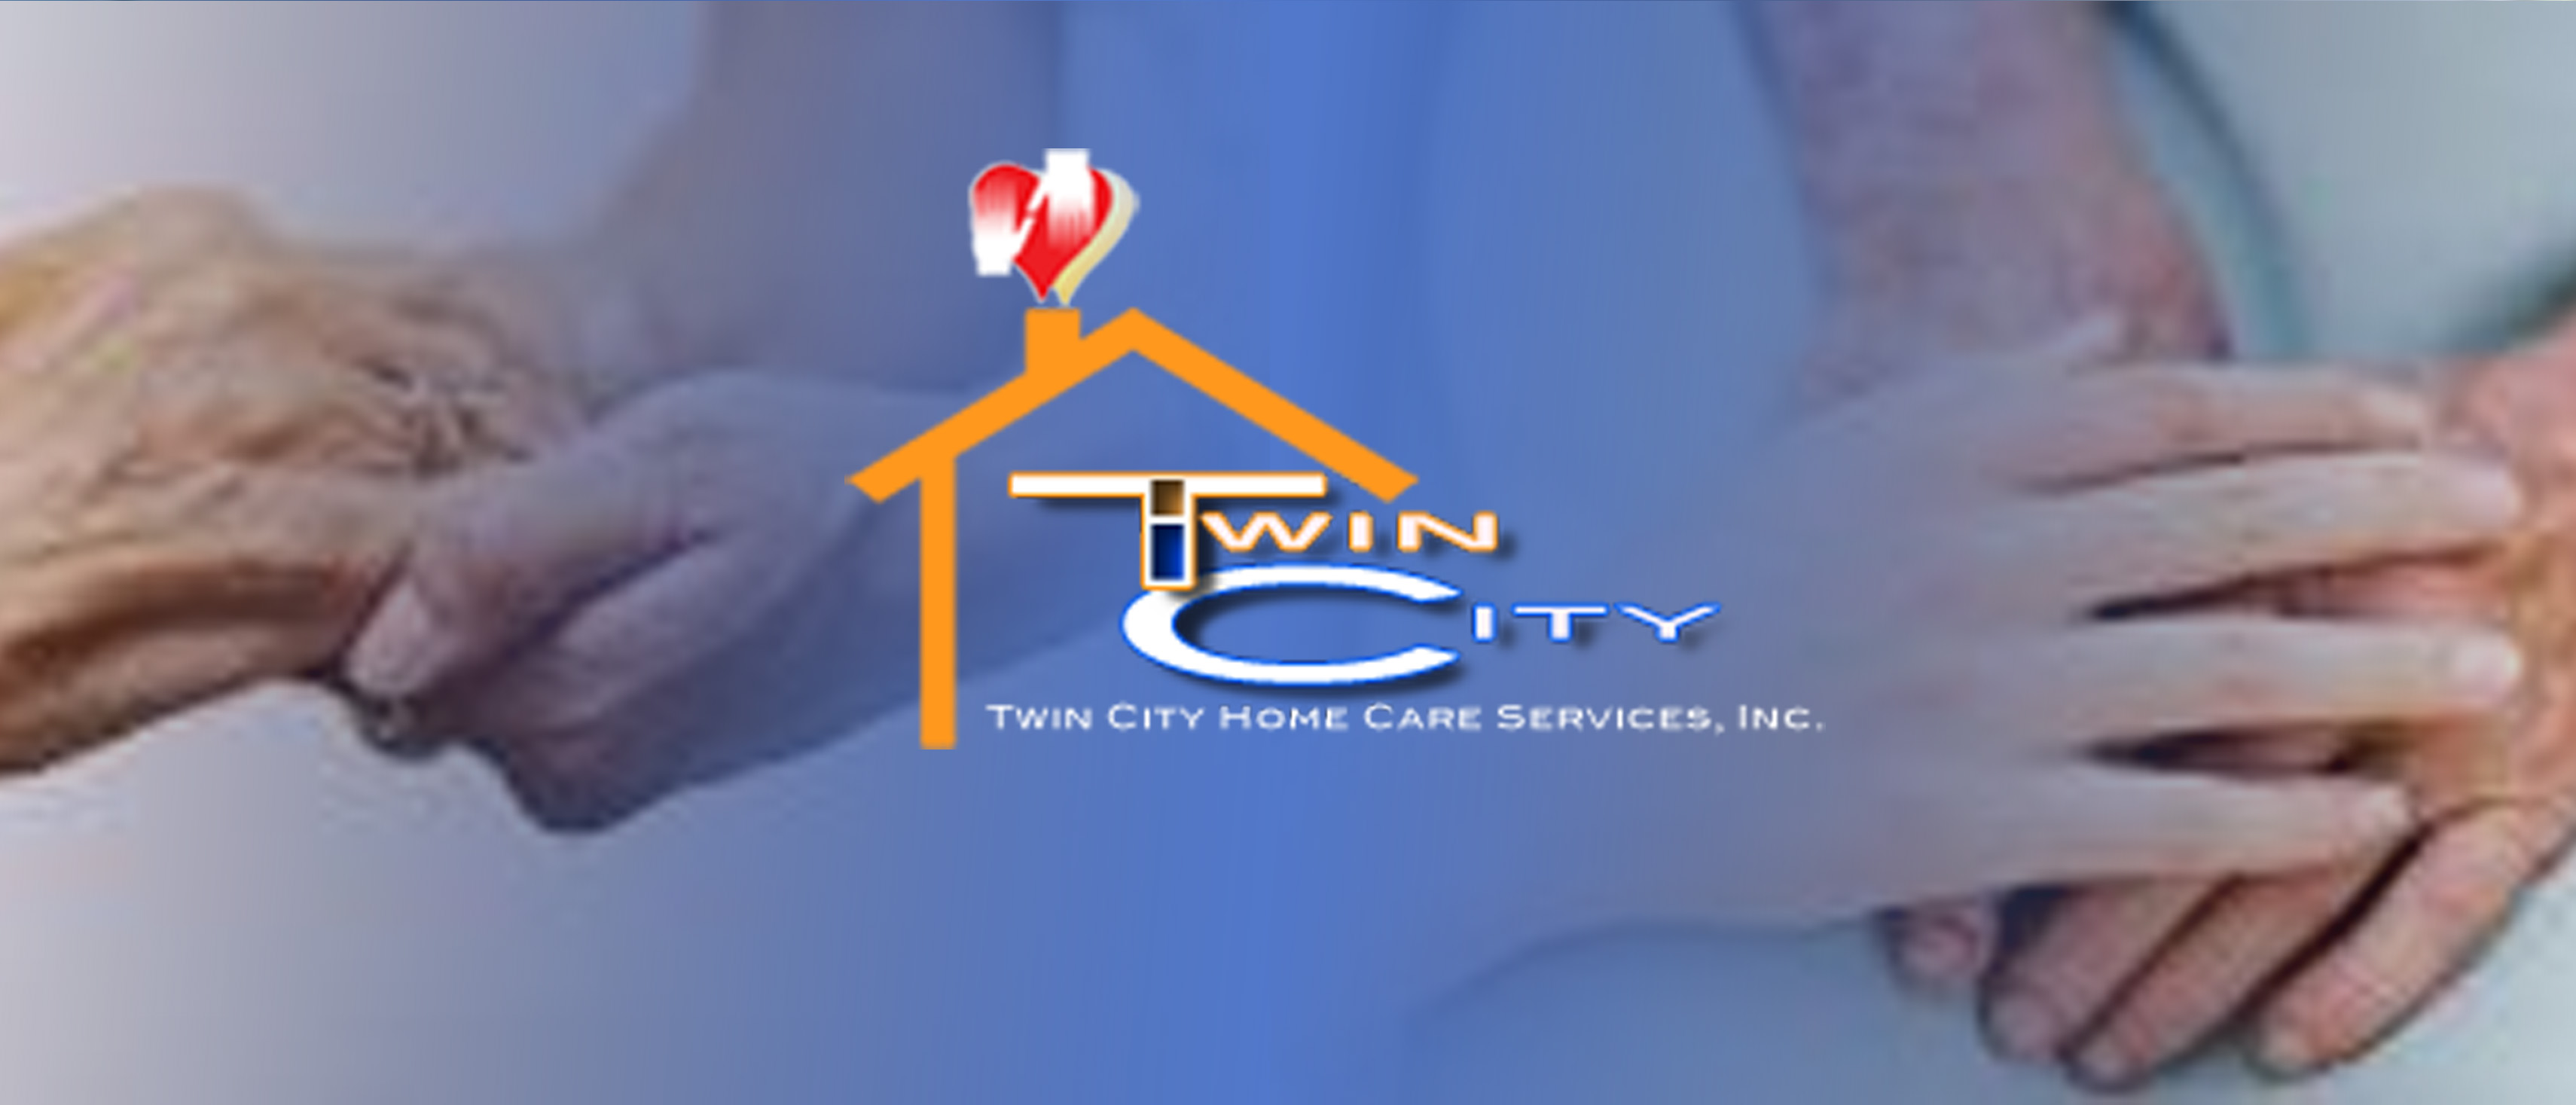 Twin City Home Care